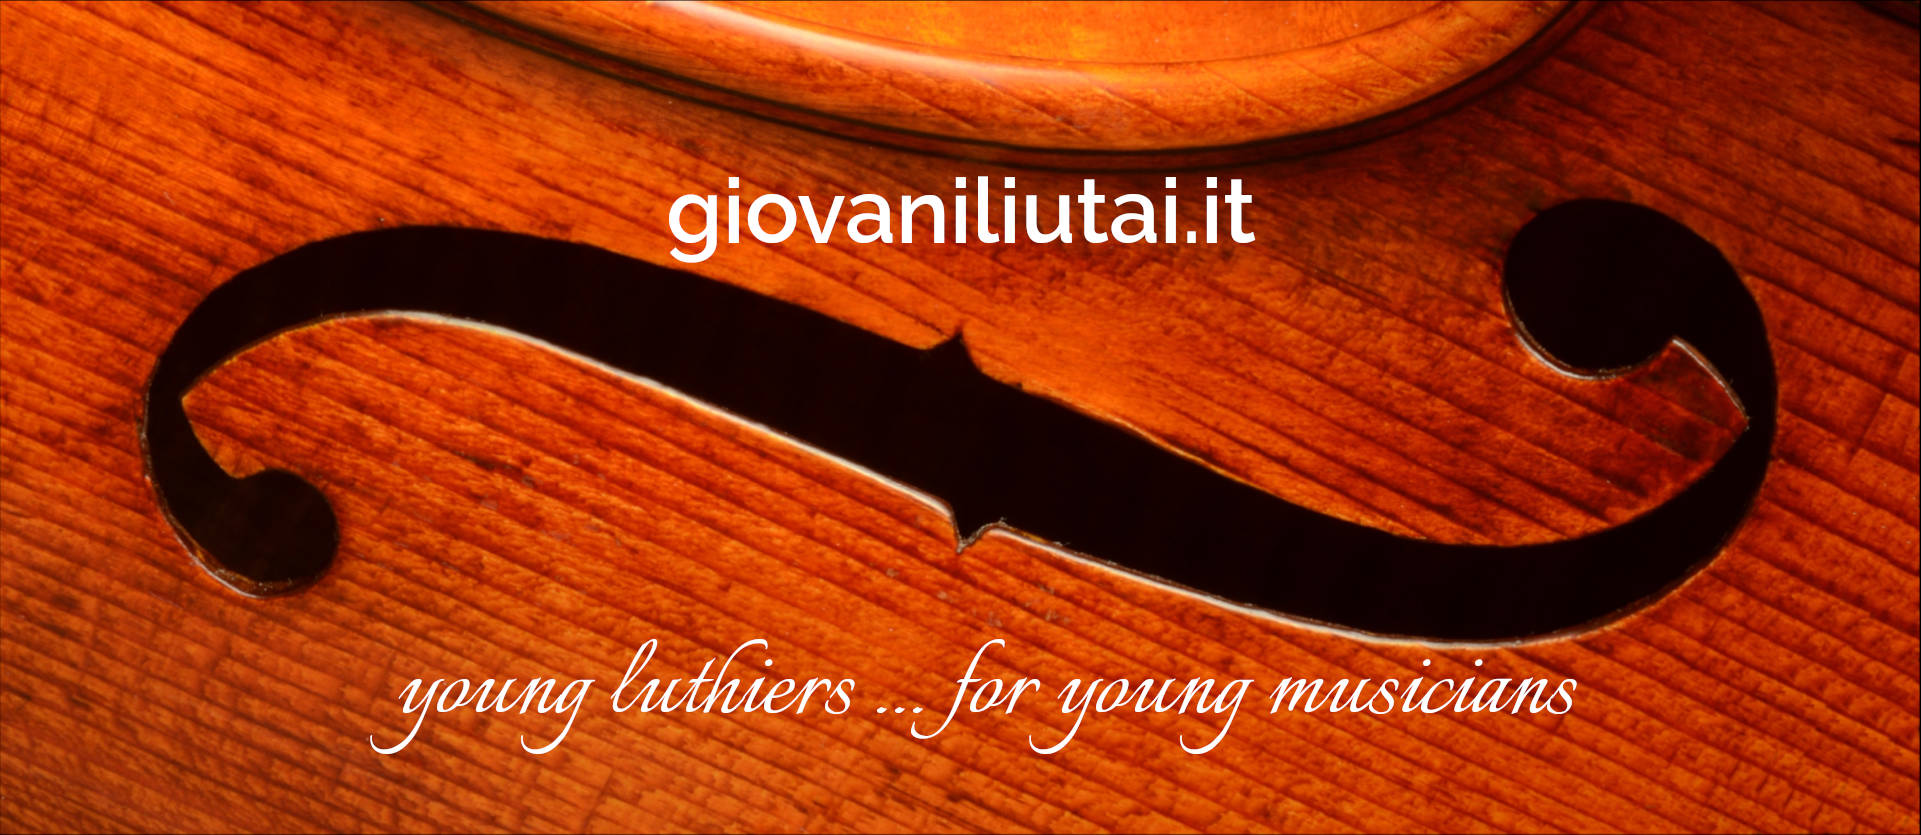 young luthiers ... for young musicians